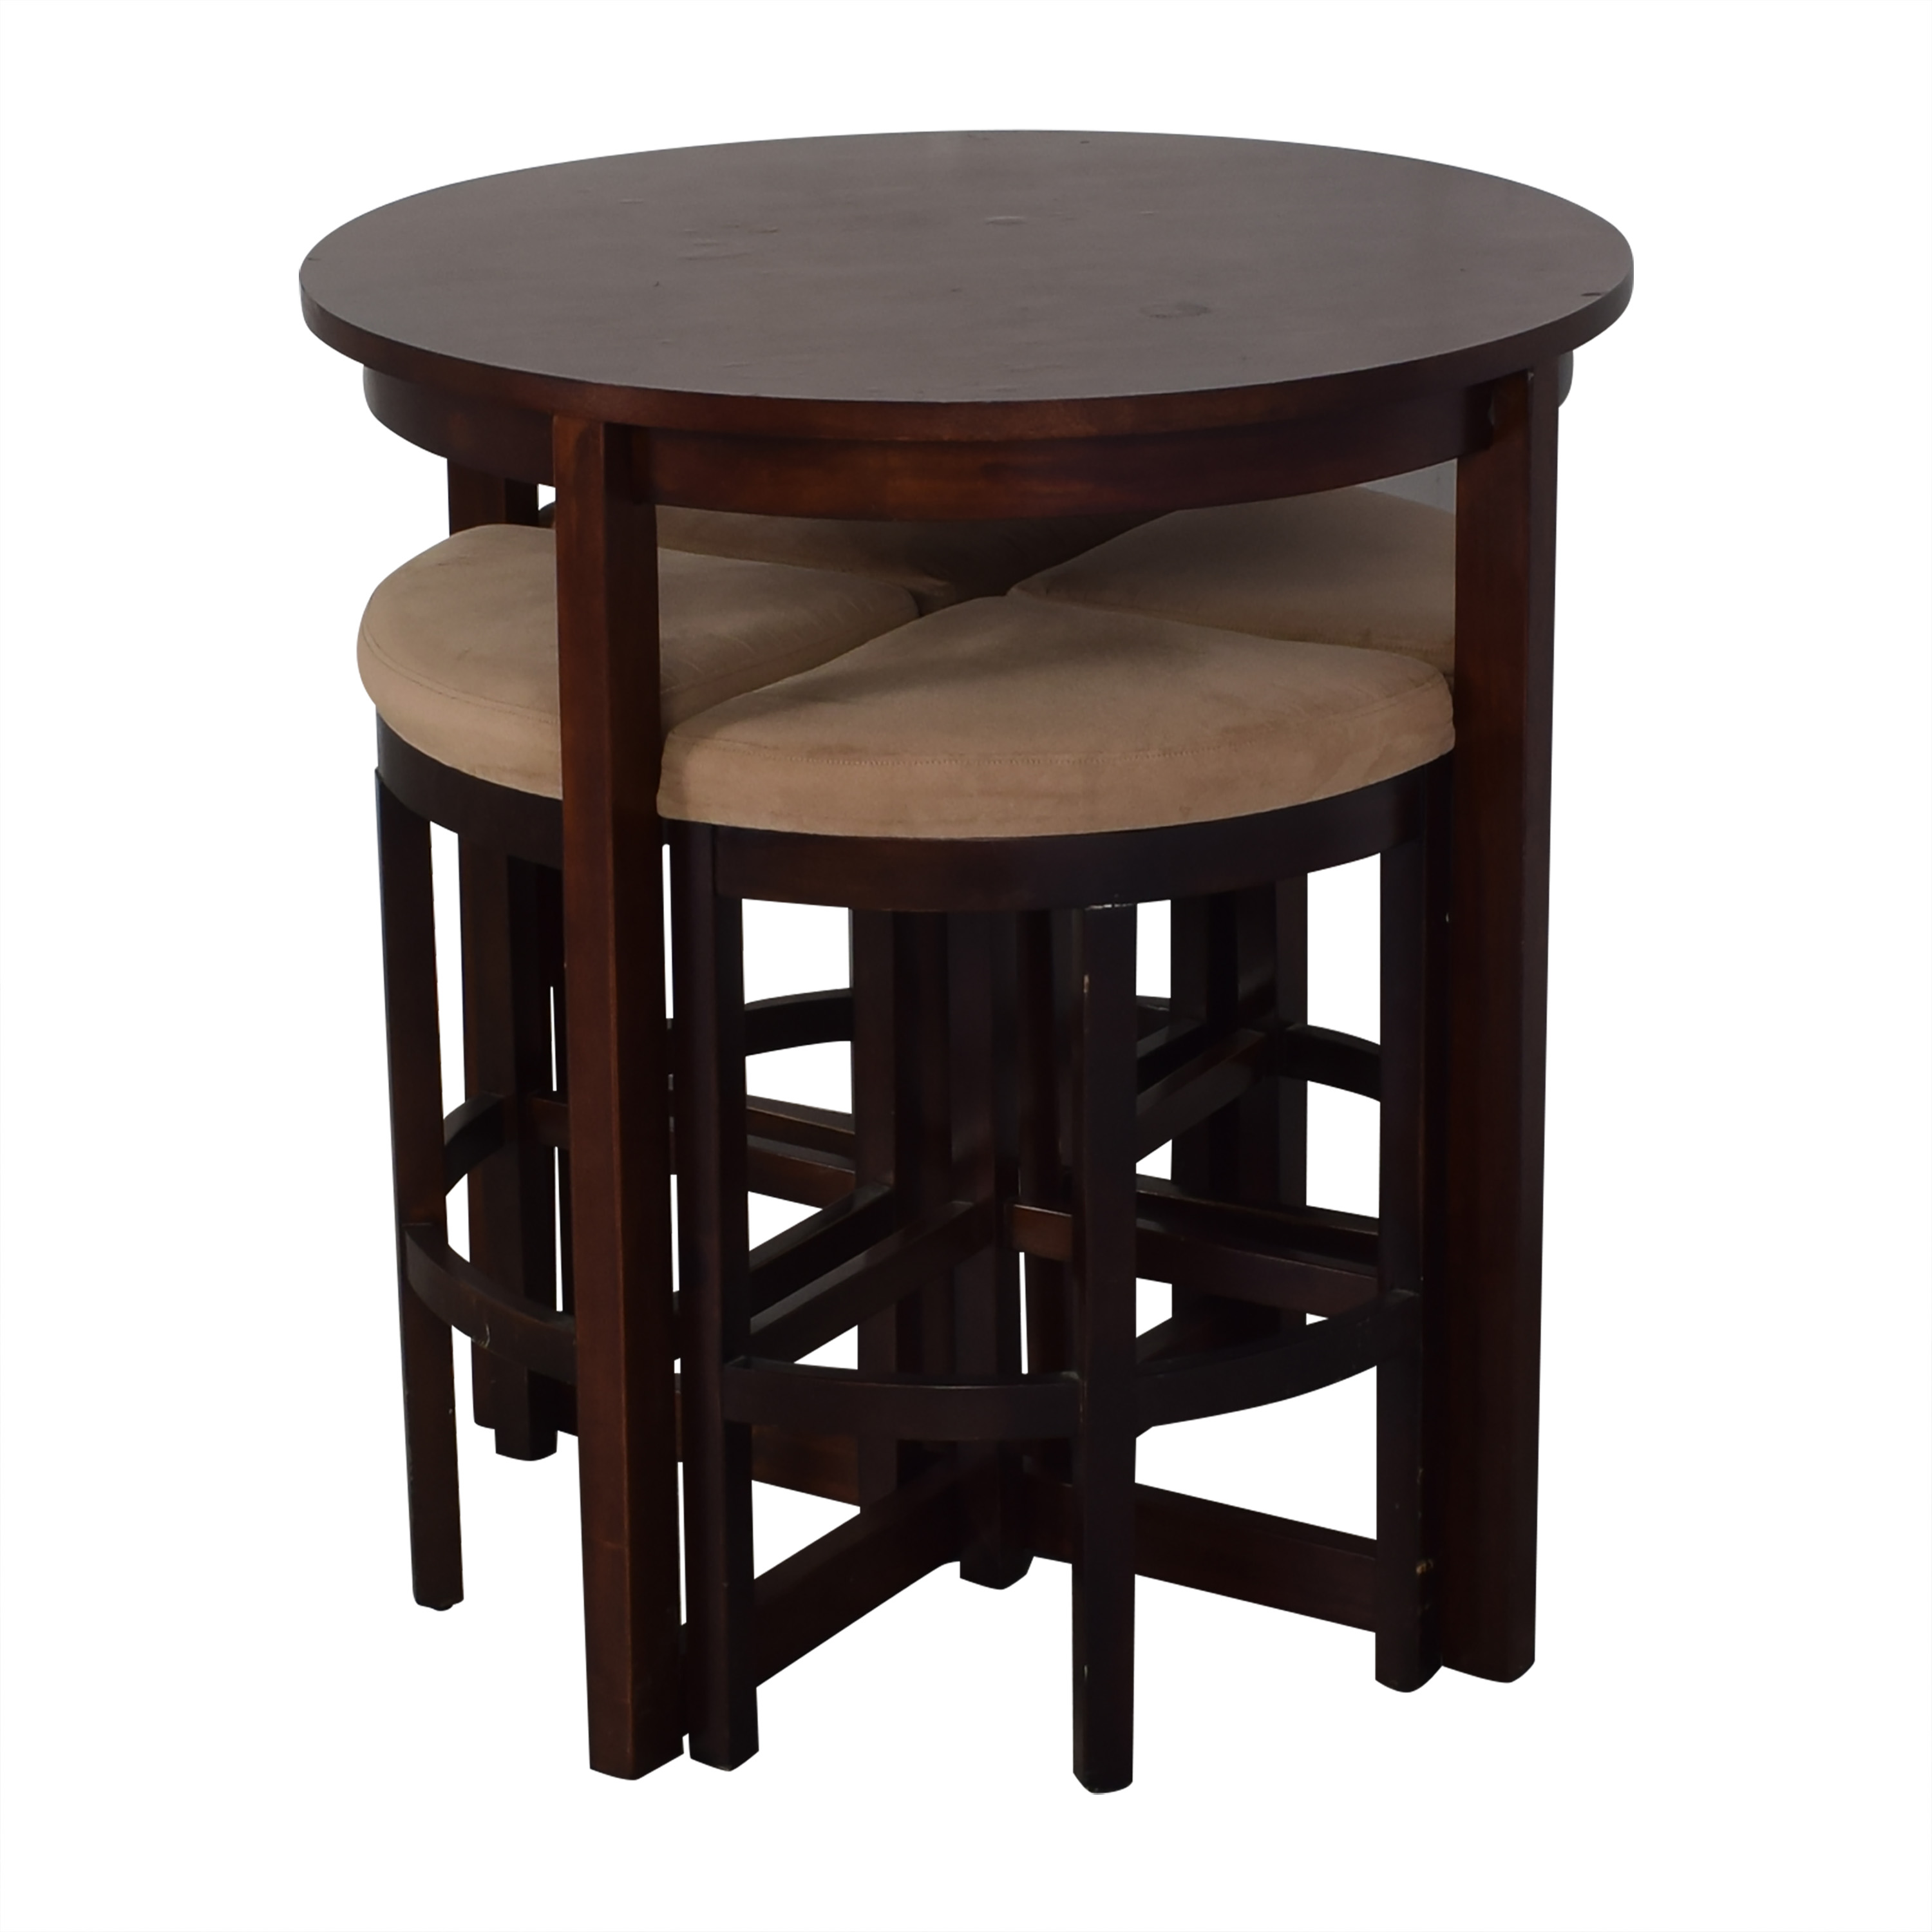 Raymour & Flanigan Raymour & Flanigan Round Table and Stools Dinner Tables